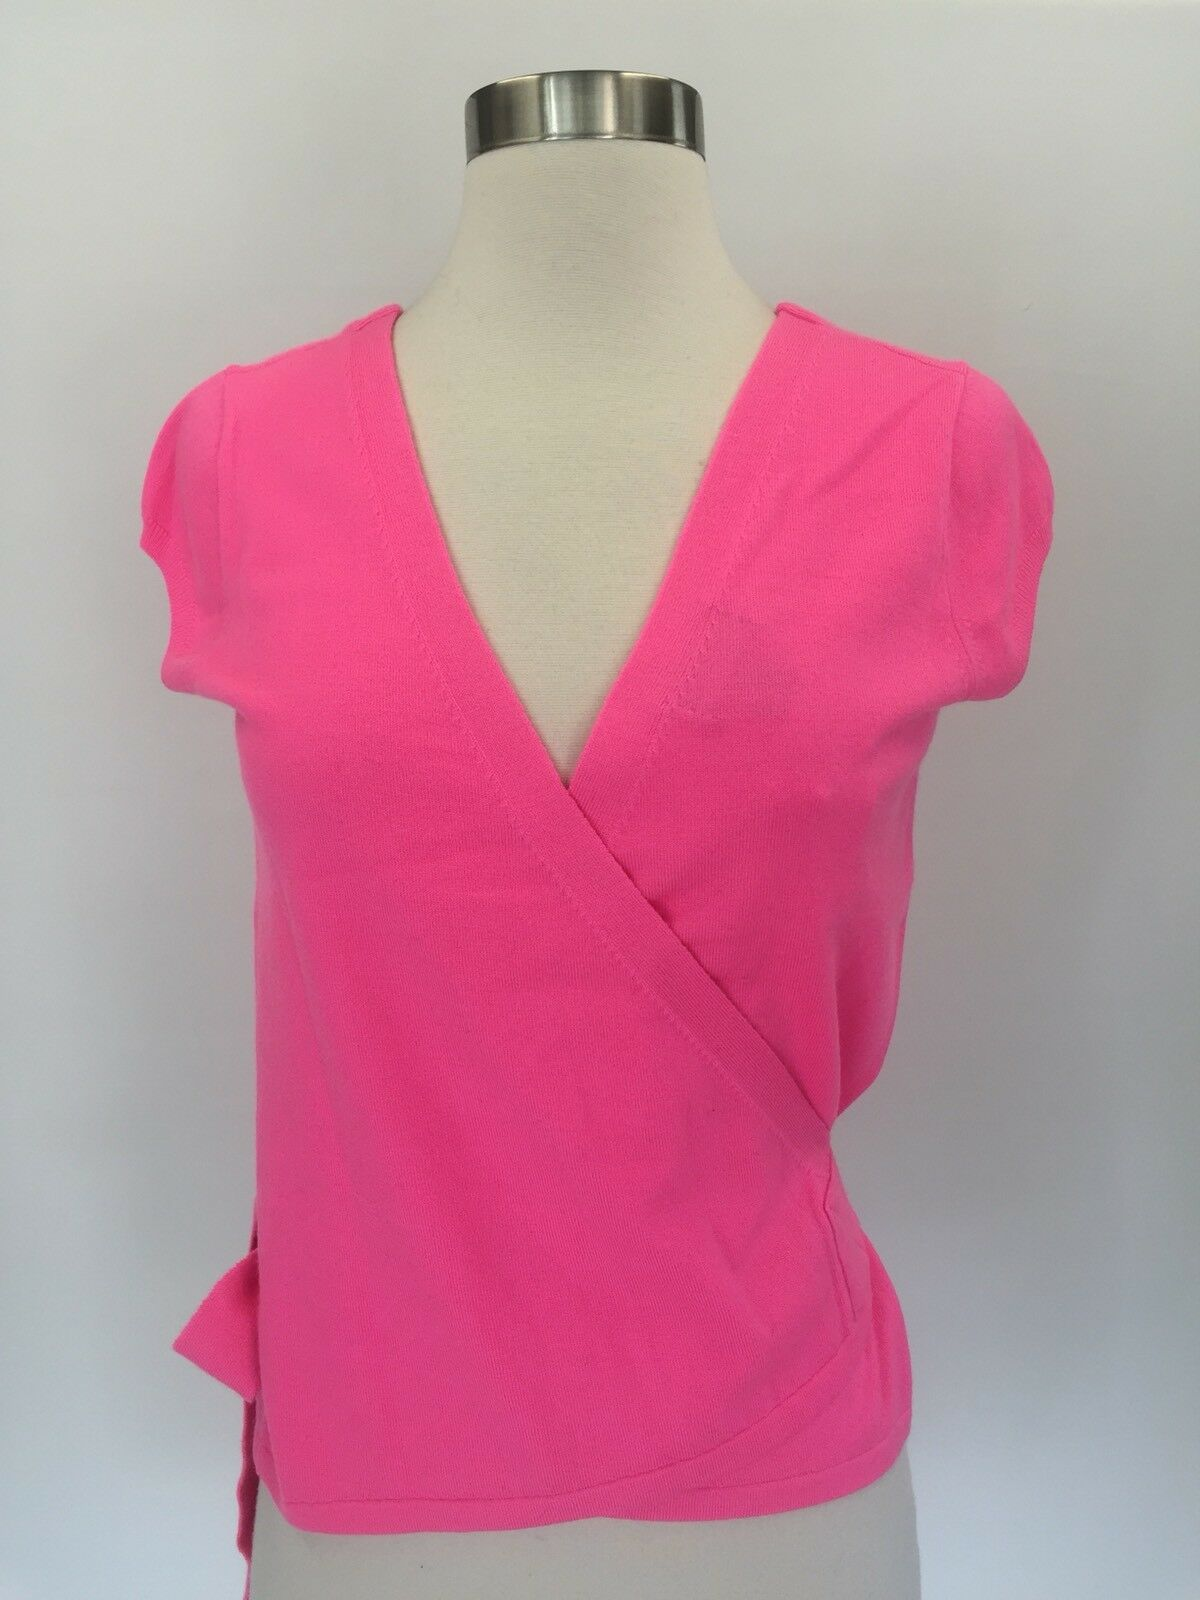 15f12559df2 JCrew Italian Featherweight Cashmere Wrap Sweater Hot Pink Size S G4949 New